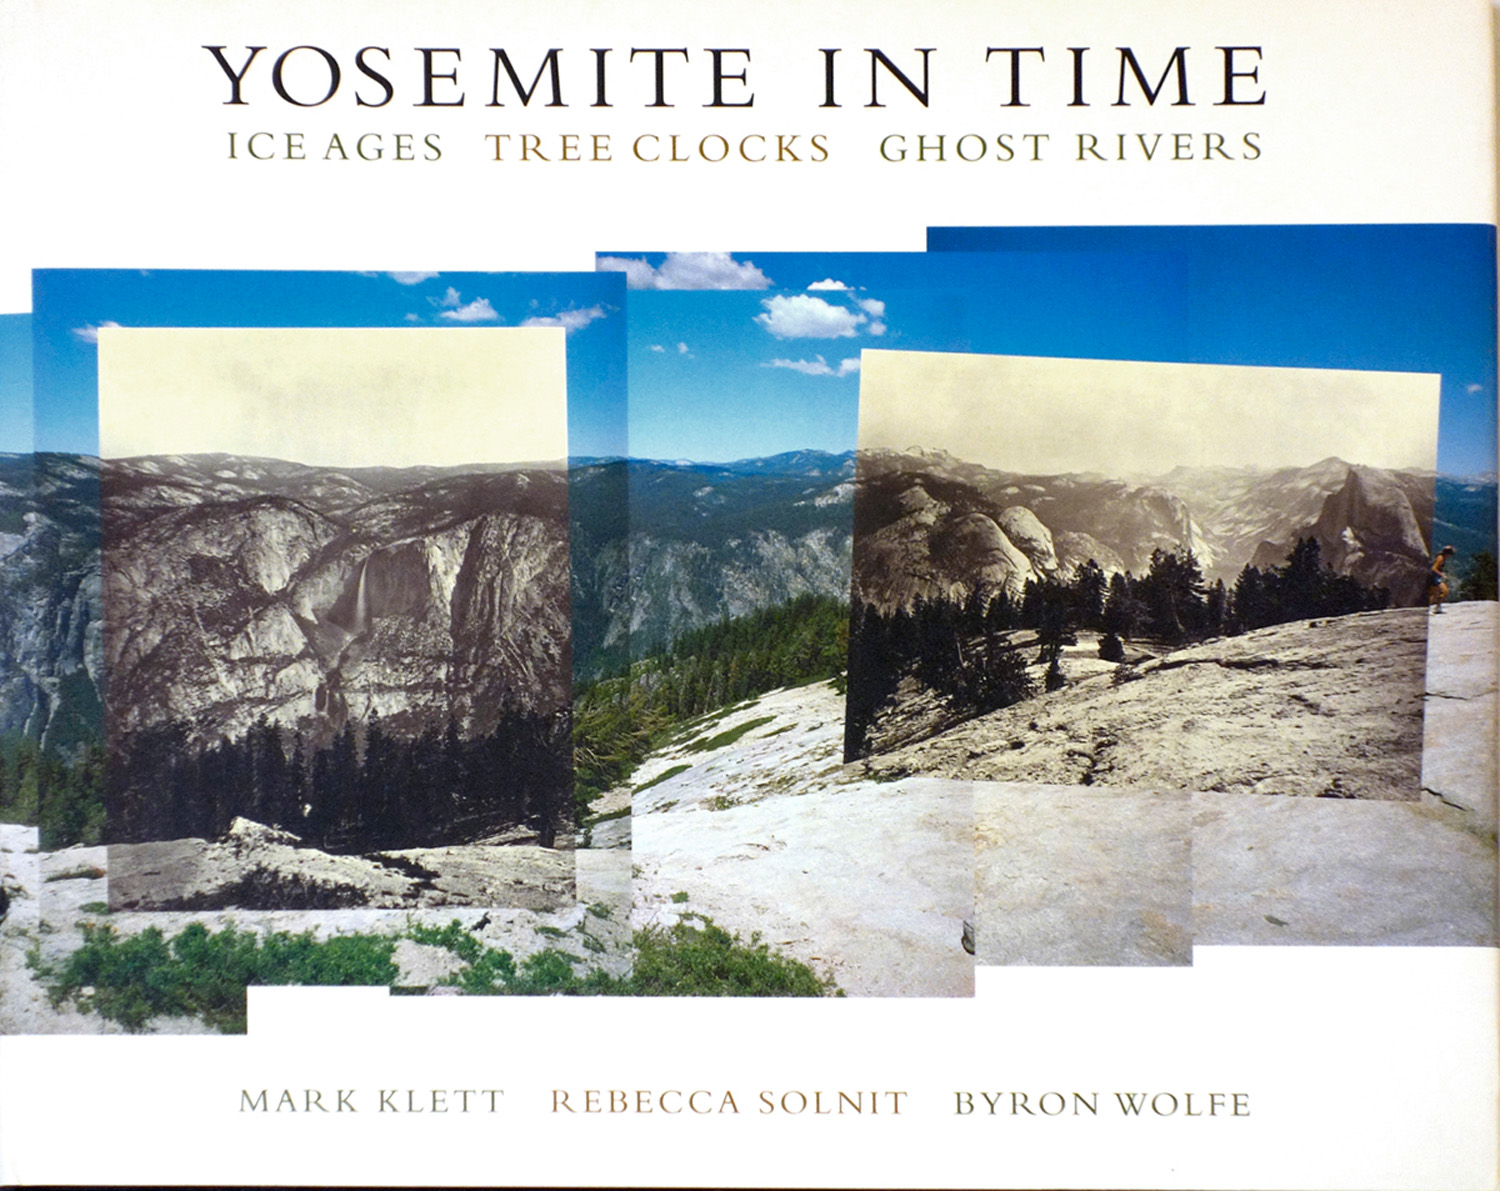 Yosemite in Time, Ice Ages, Tree Clocks, Ghost Rivers, with Rebecca Solnit and Byron Wolfe, Trinity University Press 2005 and 2008